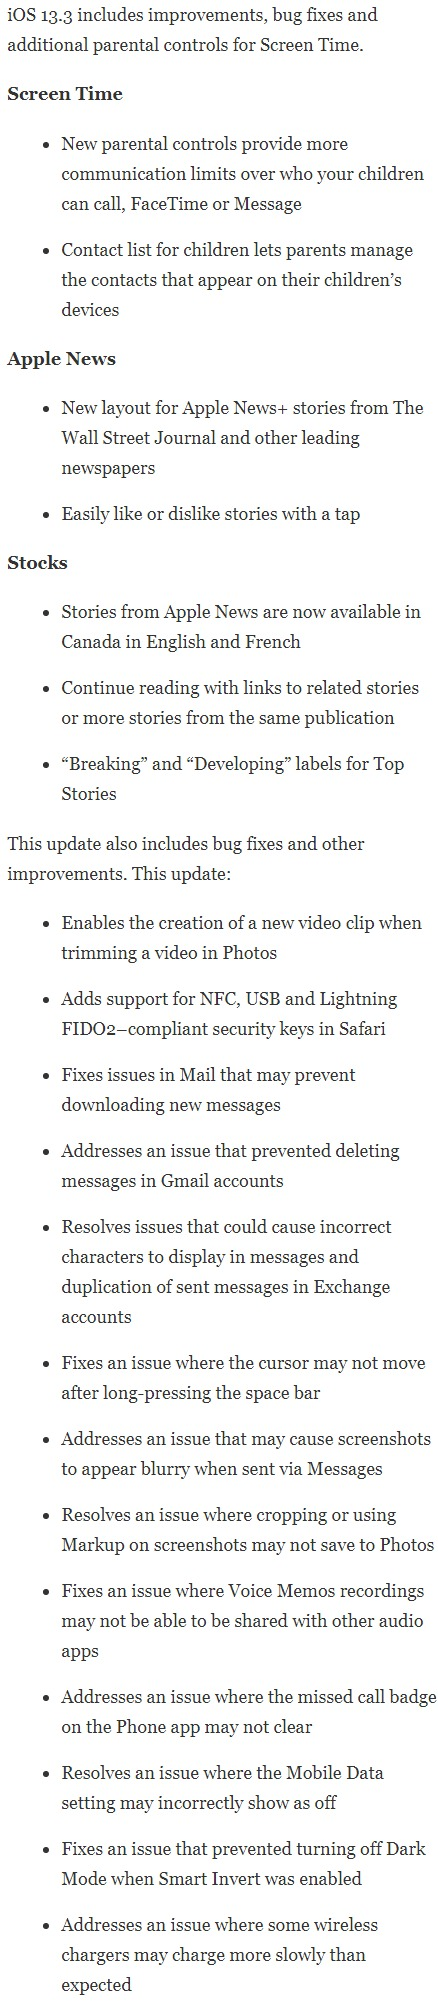 ios 13.3 final release notes